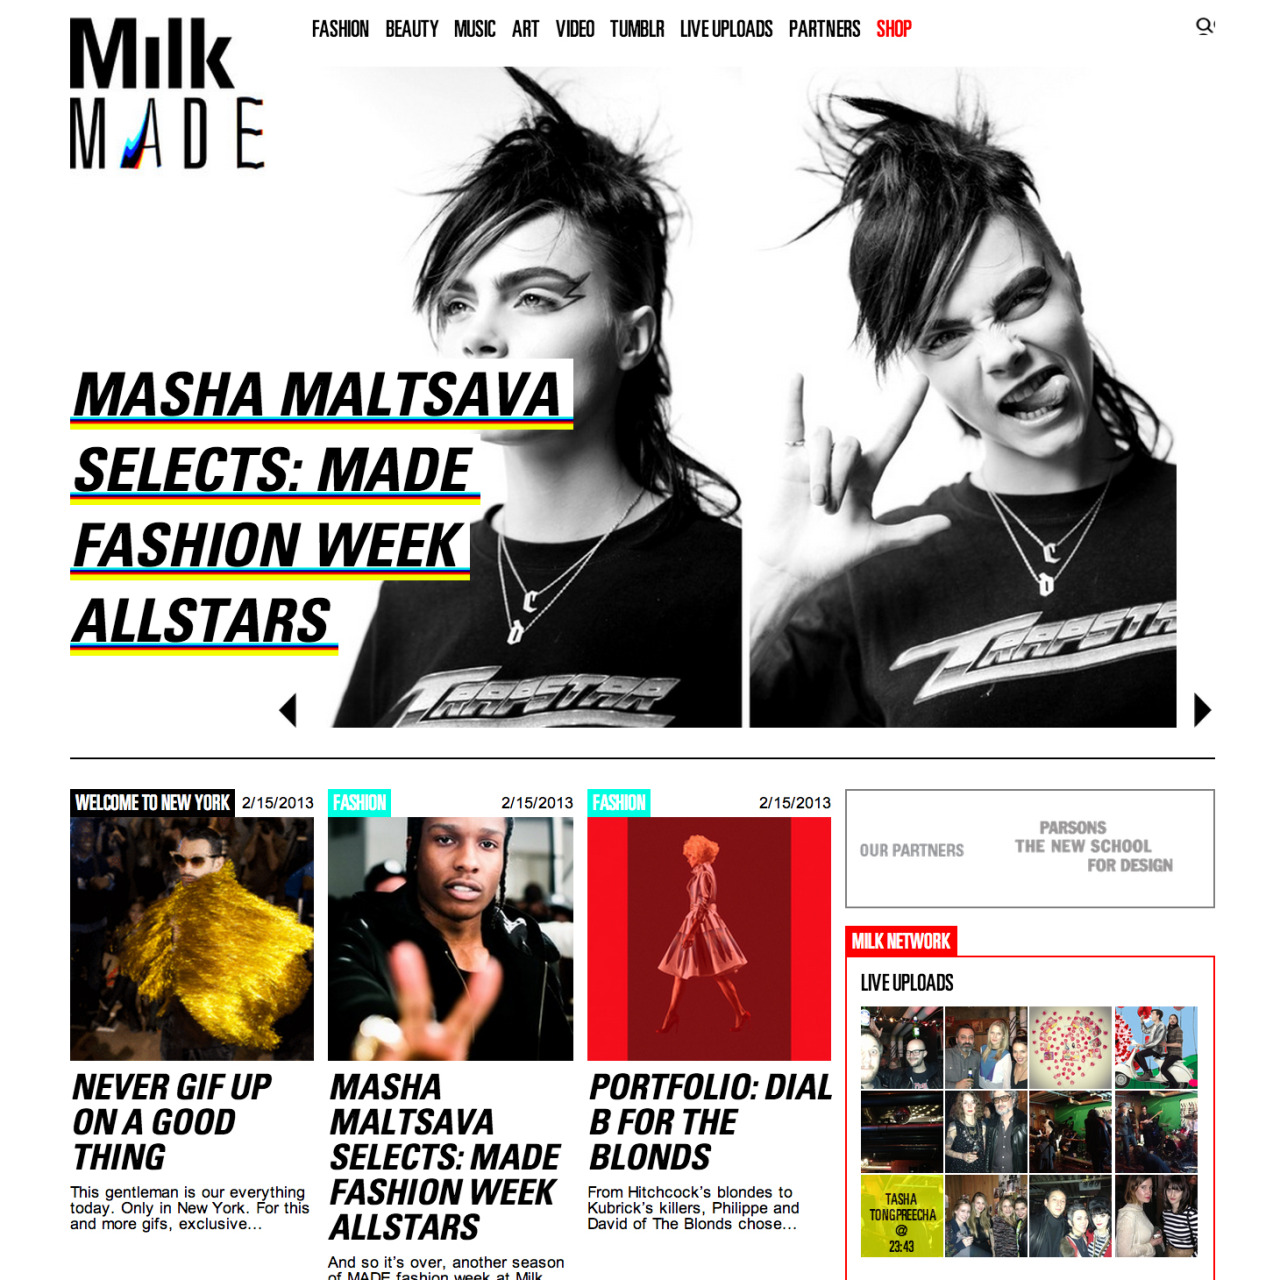 Big Thanks to Milk Made for the feature! <3 Follow the link to see photos of Cara Delevingne, A$ap Rocky, Theophilus London, Terry Richardson and others… http://milkmade.com/articles/1866-MASHA-MALTSAVA-SELECTS-MADE-FASHION-WEEK-ALLSTARS